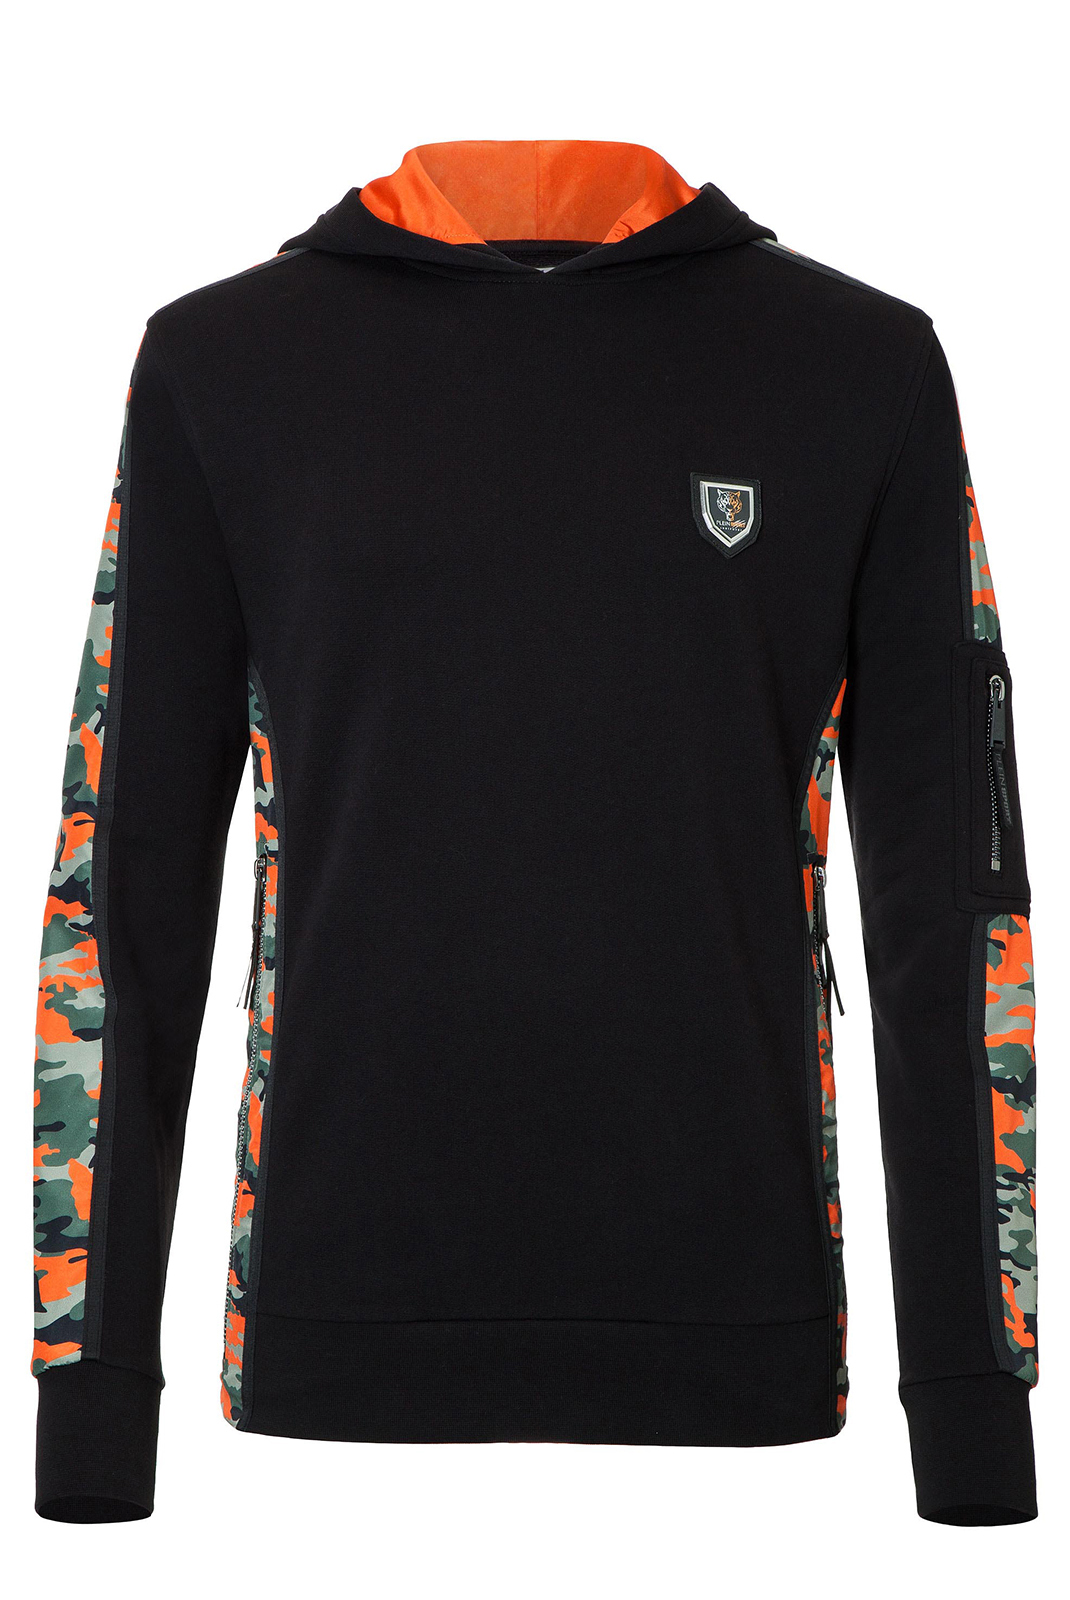 Sweatshirts  Plein Sport P17C MJB0073 02O4 BLACK ORANGE